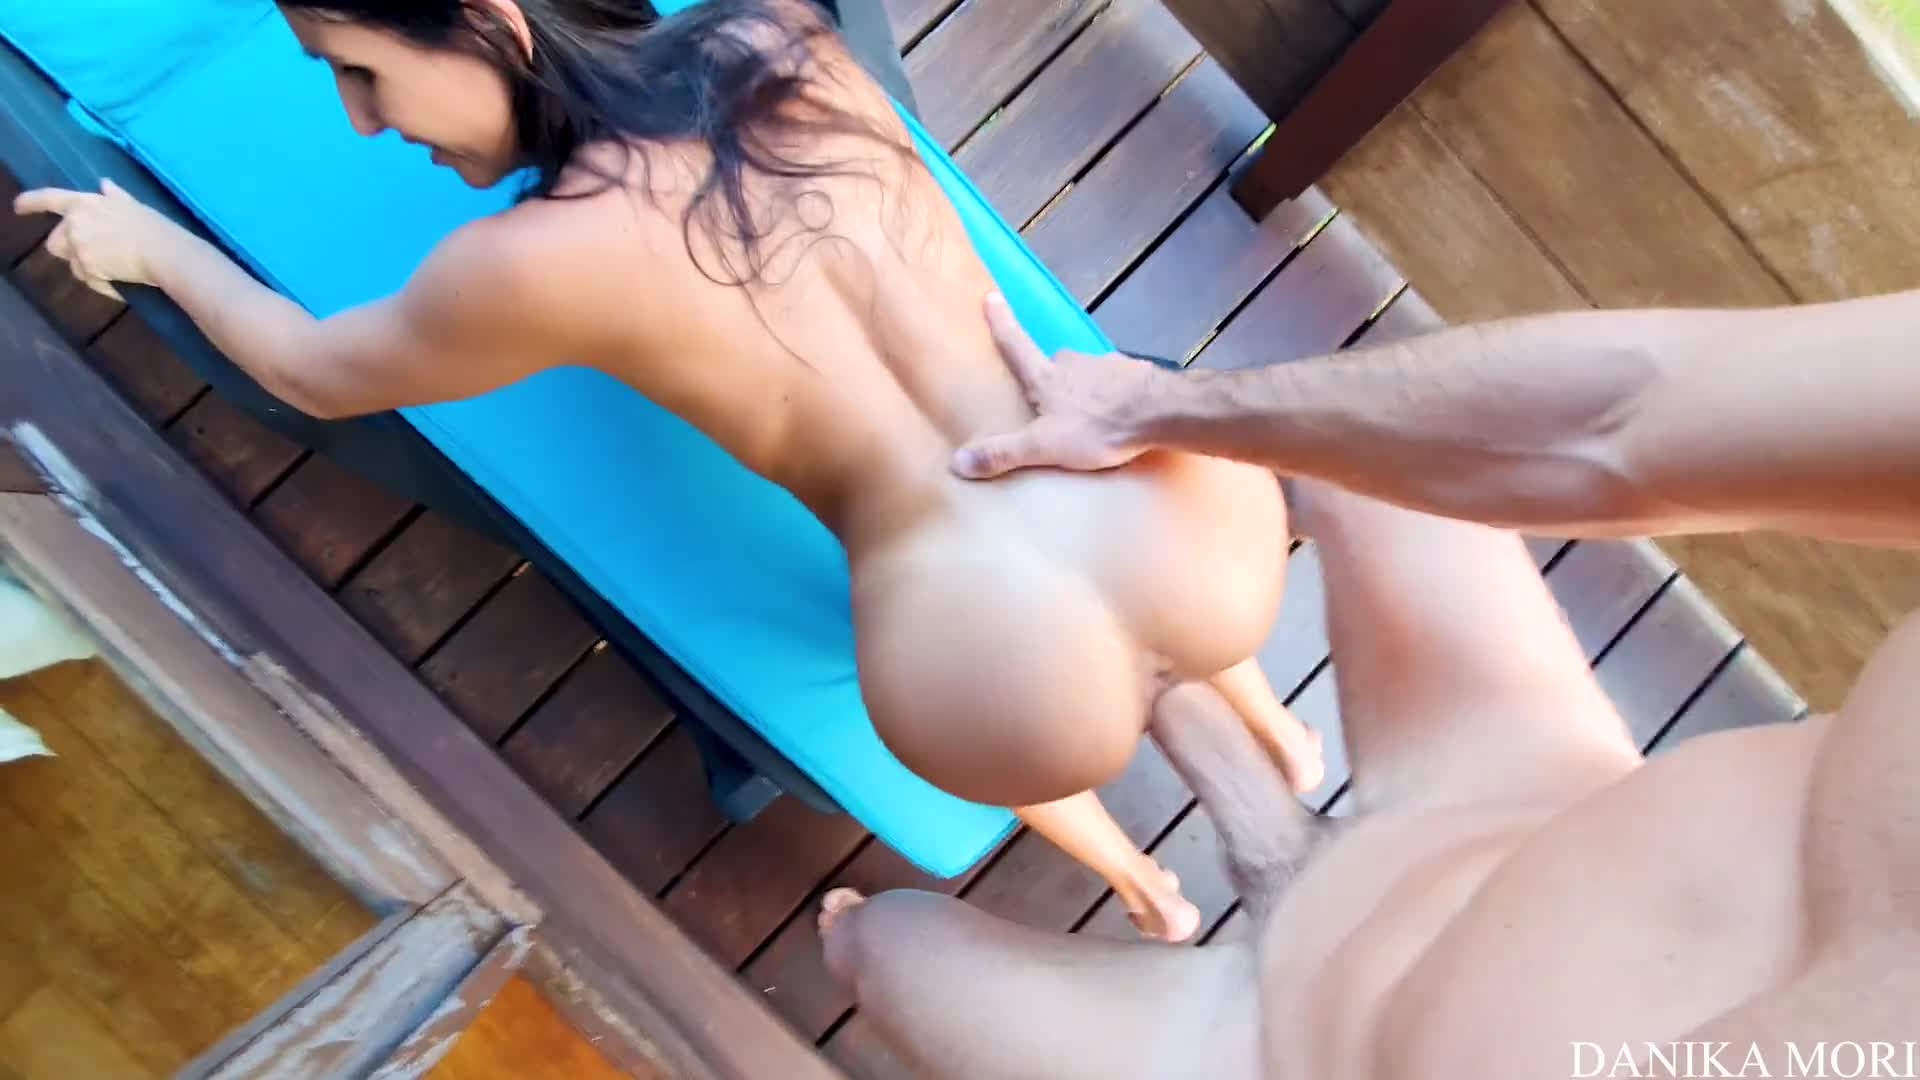 Petite Brunette Babe Gets Massive Cock in Her Tight Pussy